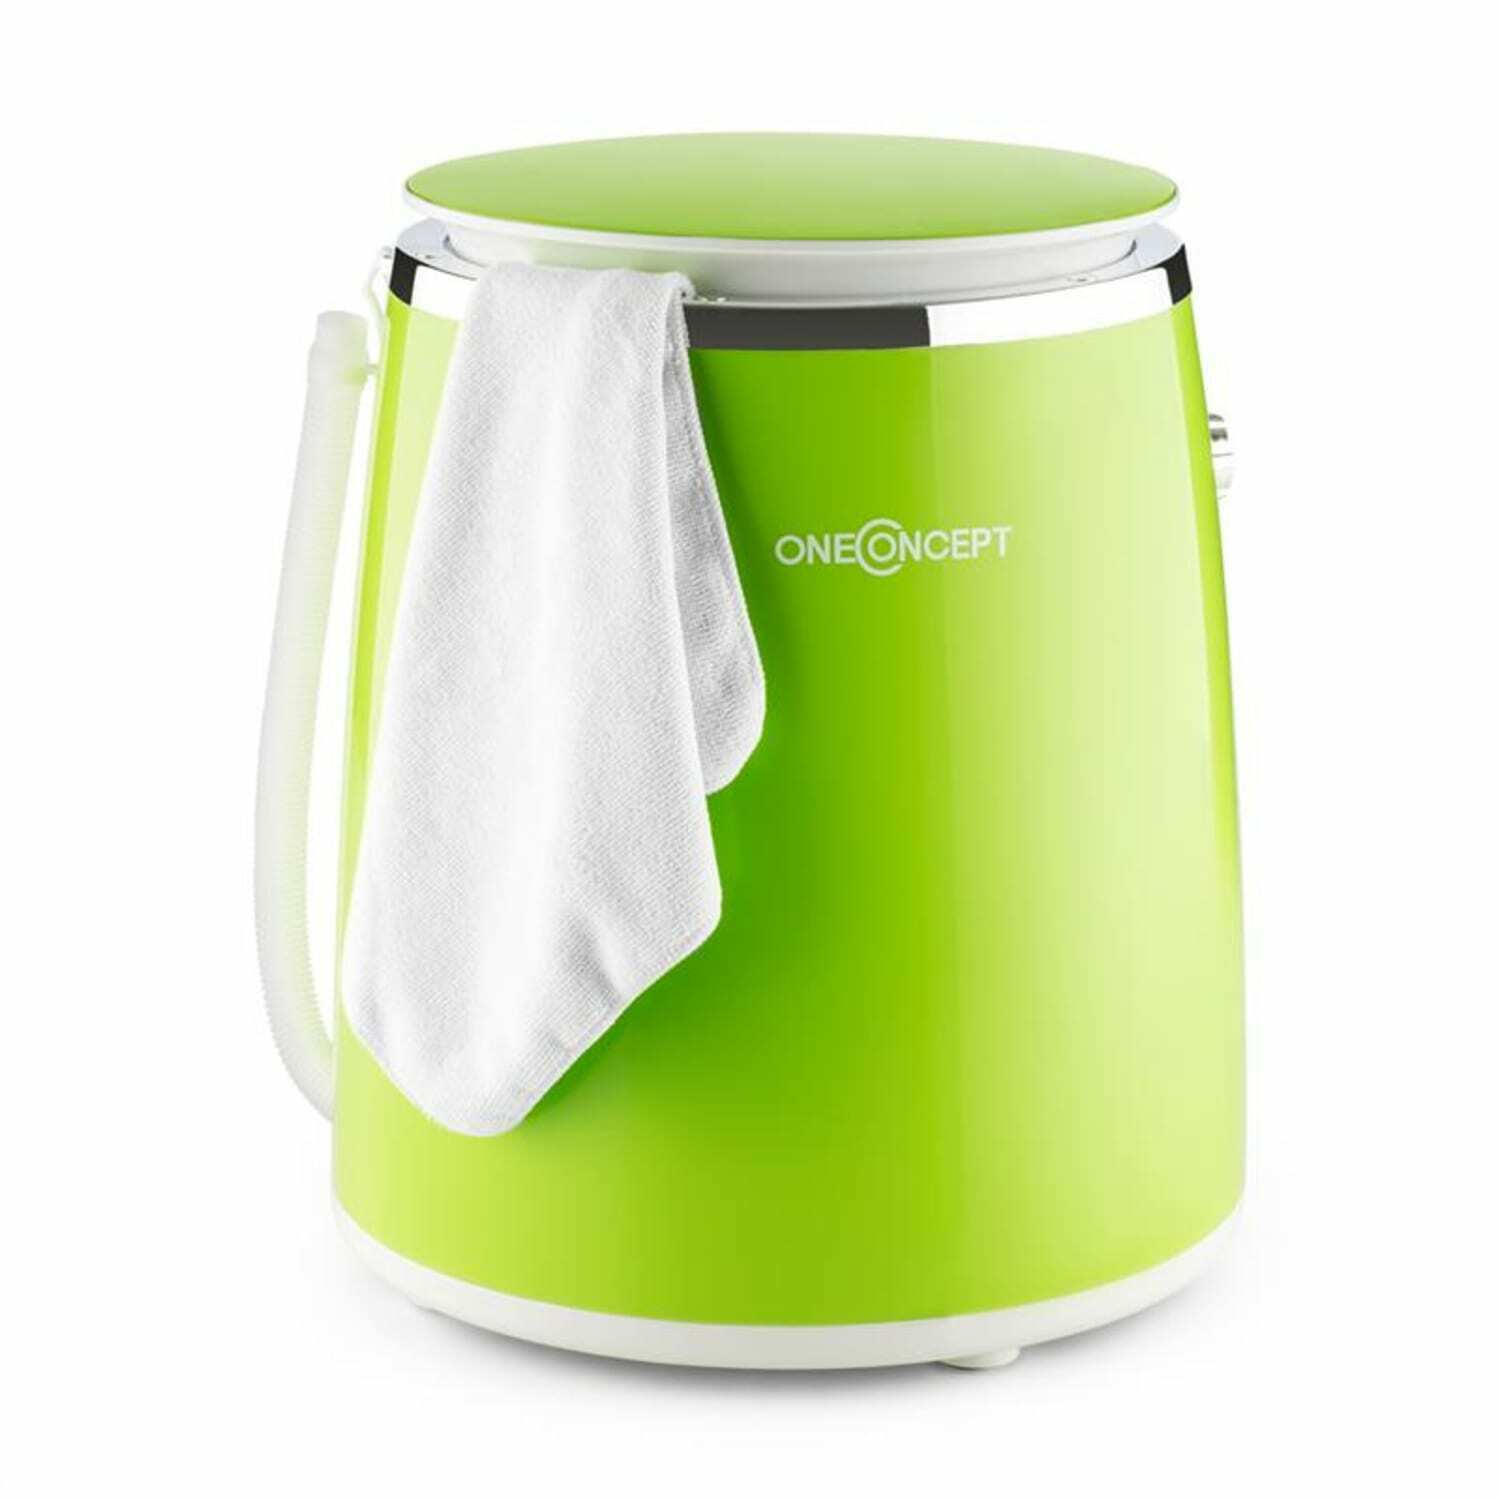 mini machine laver avec timer lave linge portable de camping tanche 380w vert eur 76 99. Black Bedroom Furniture Sets. Home Design Ideas